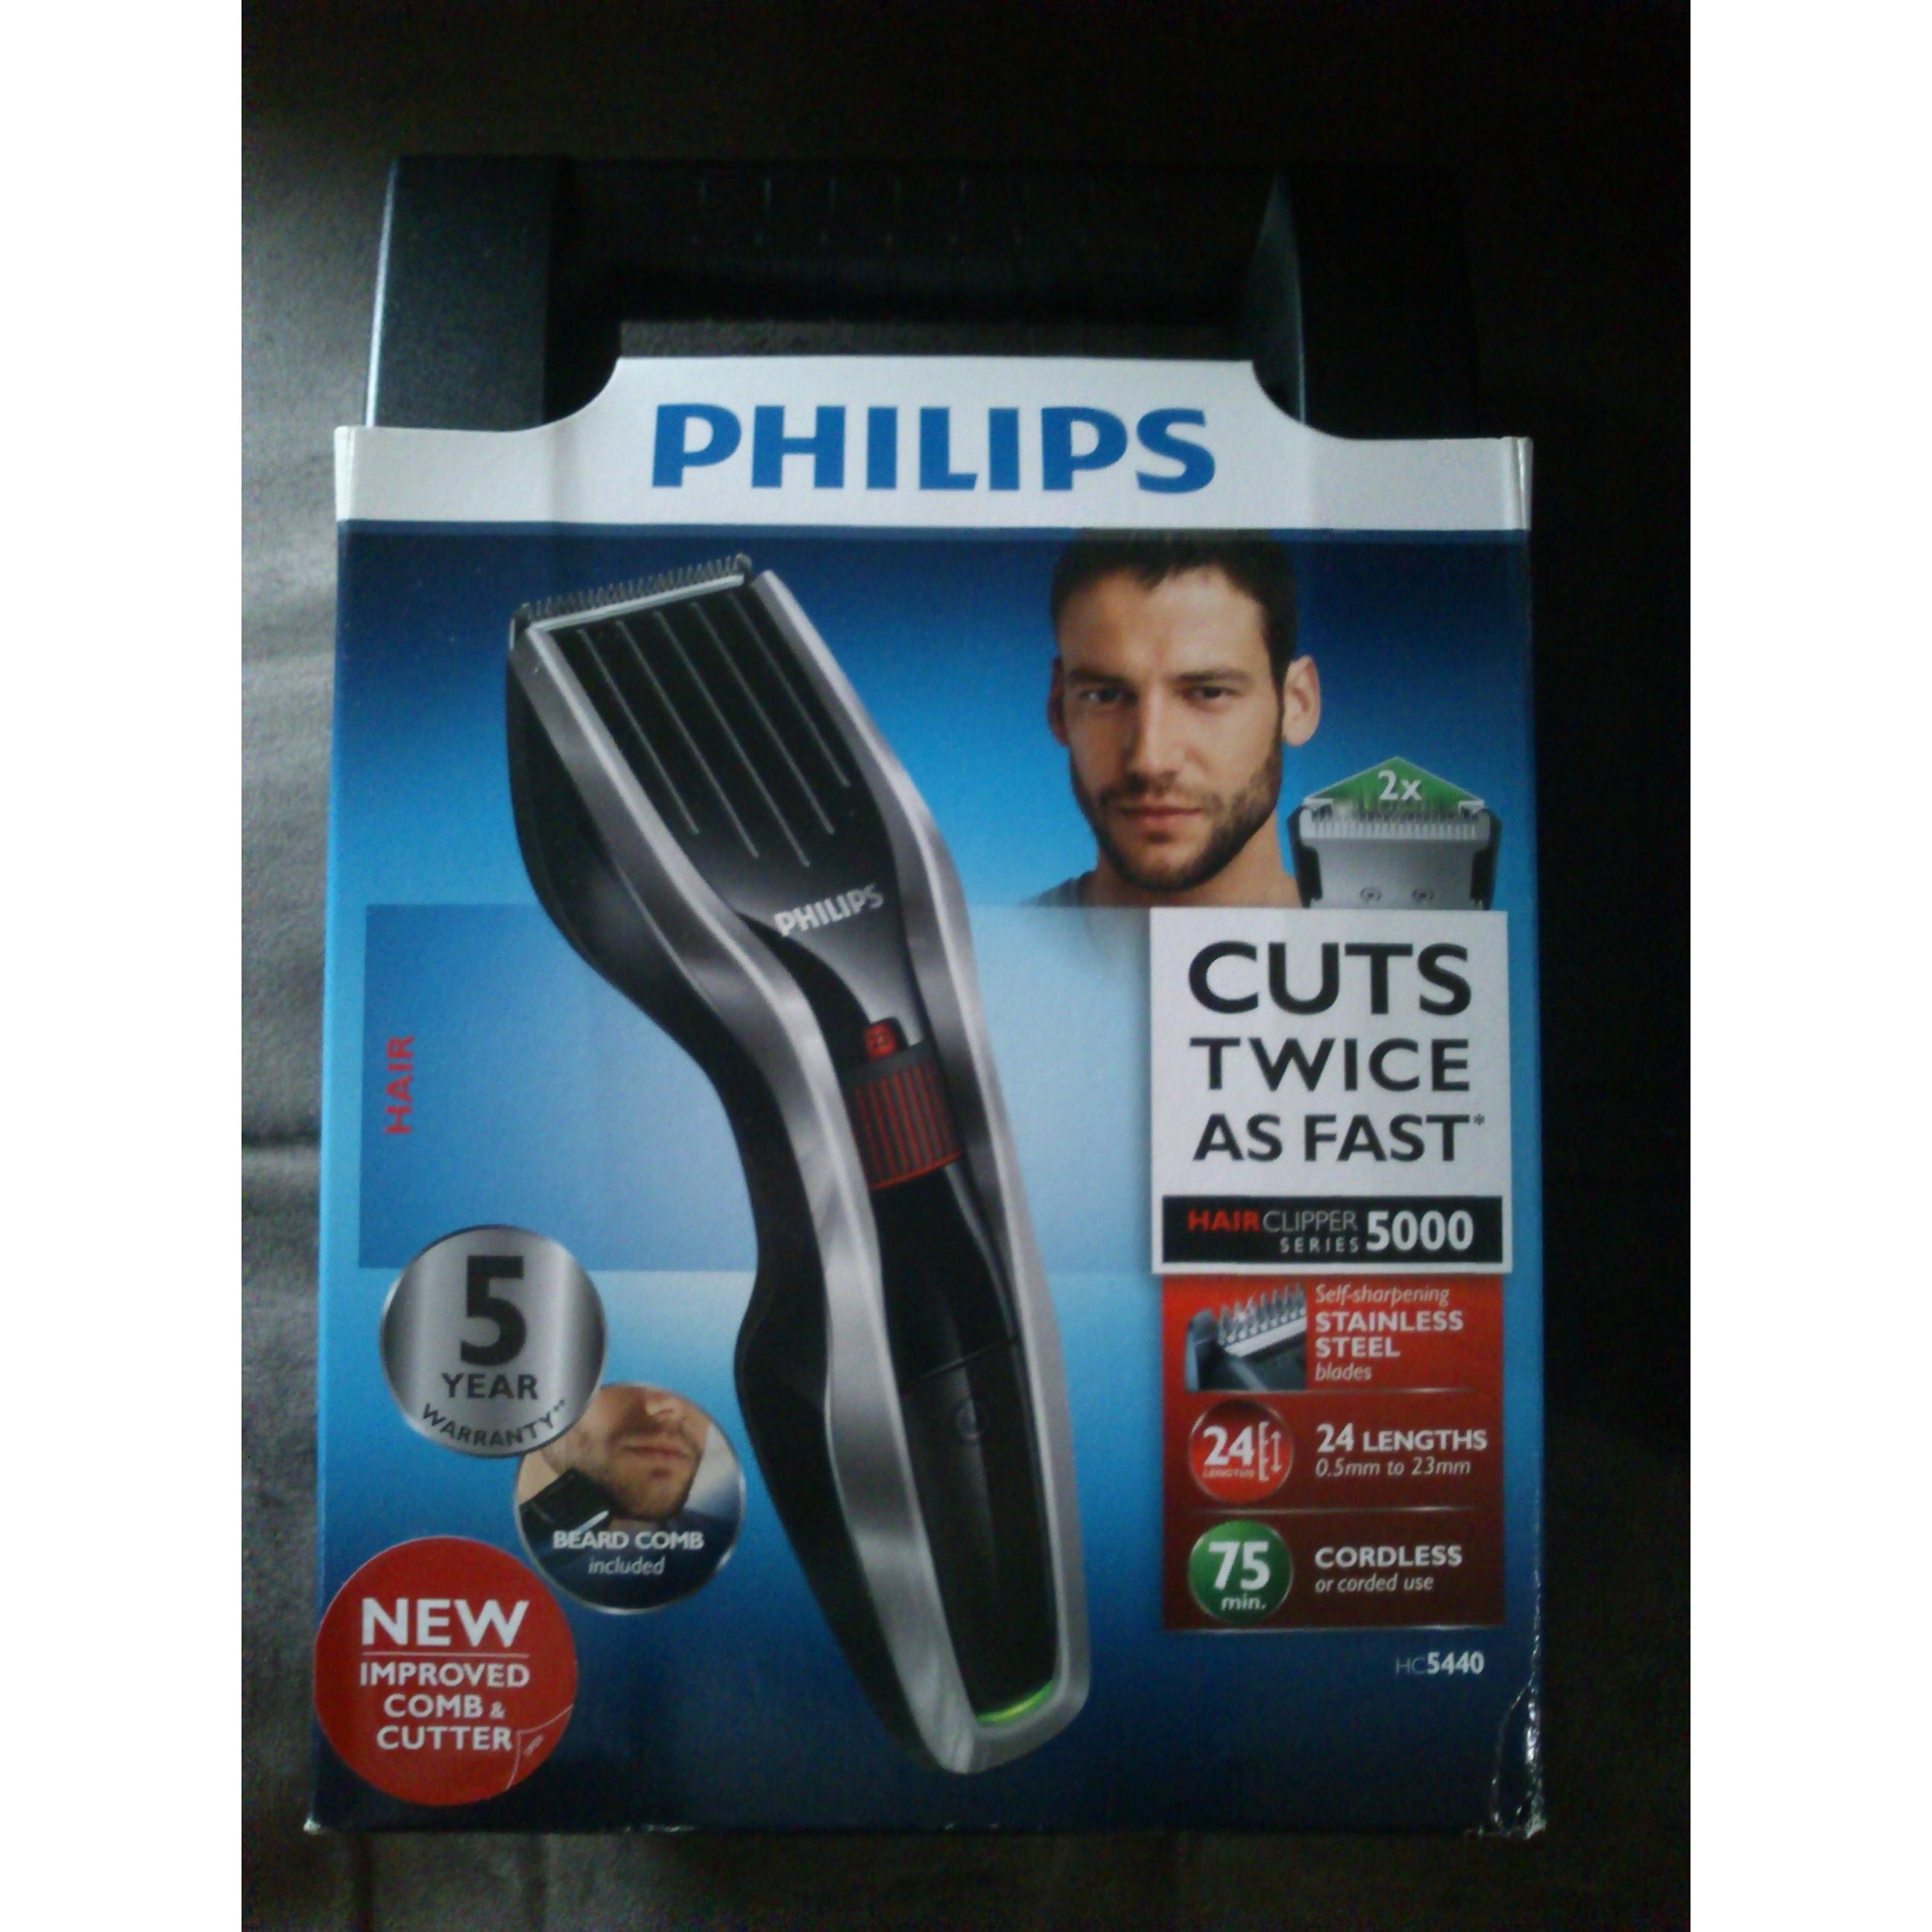 Philips Hair Clipper Hc5440 Alat Cukur Rambut Hc 5440 Cordless ... fec5c1d681